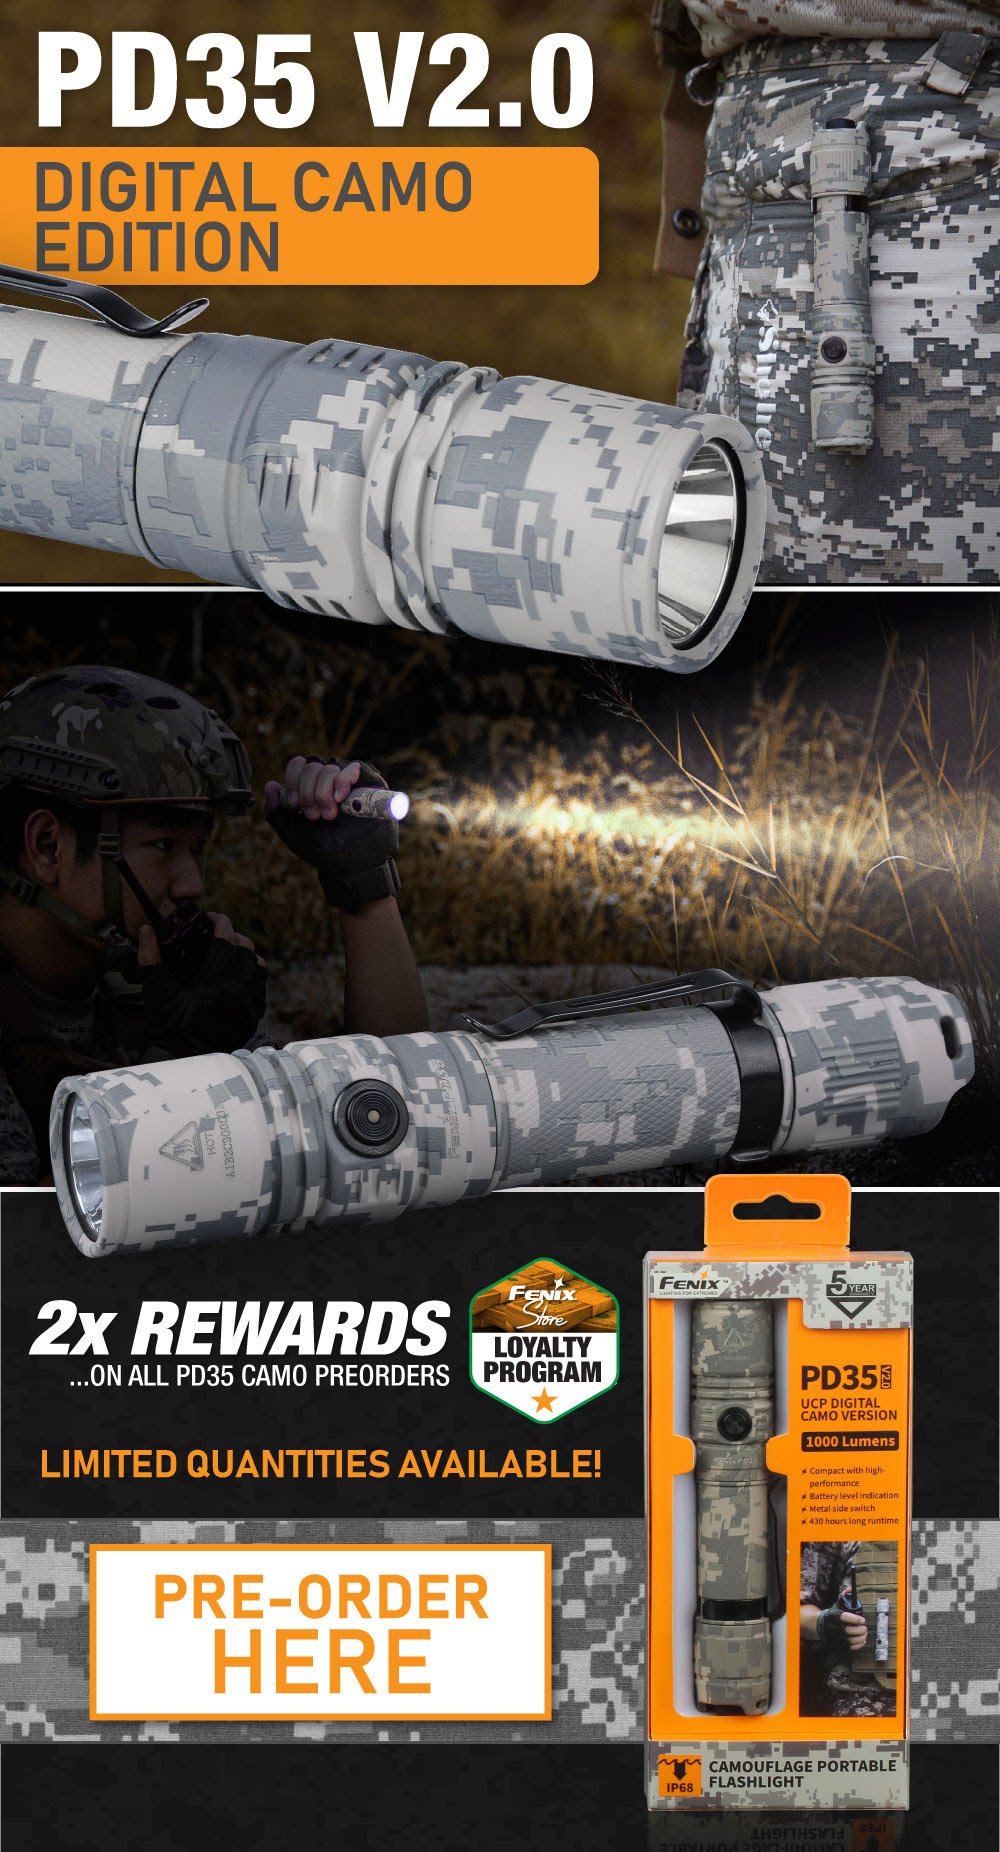 Fenix PD35 V2.0 Digital Camo LED Flashlight